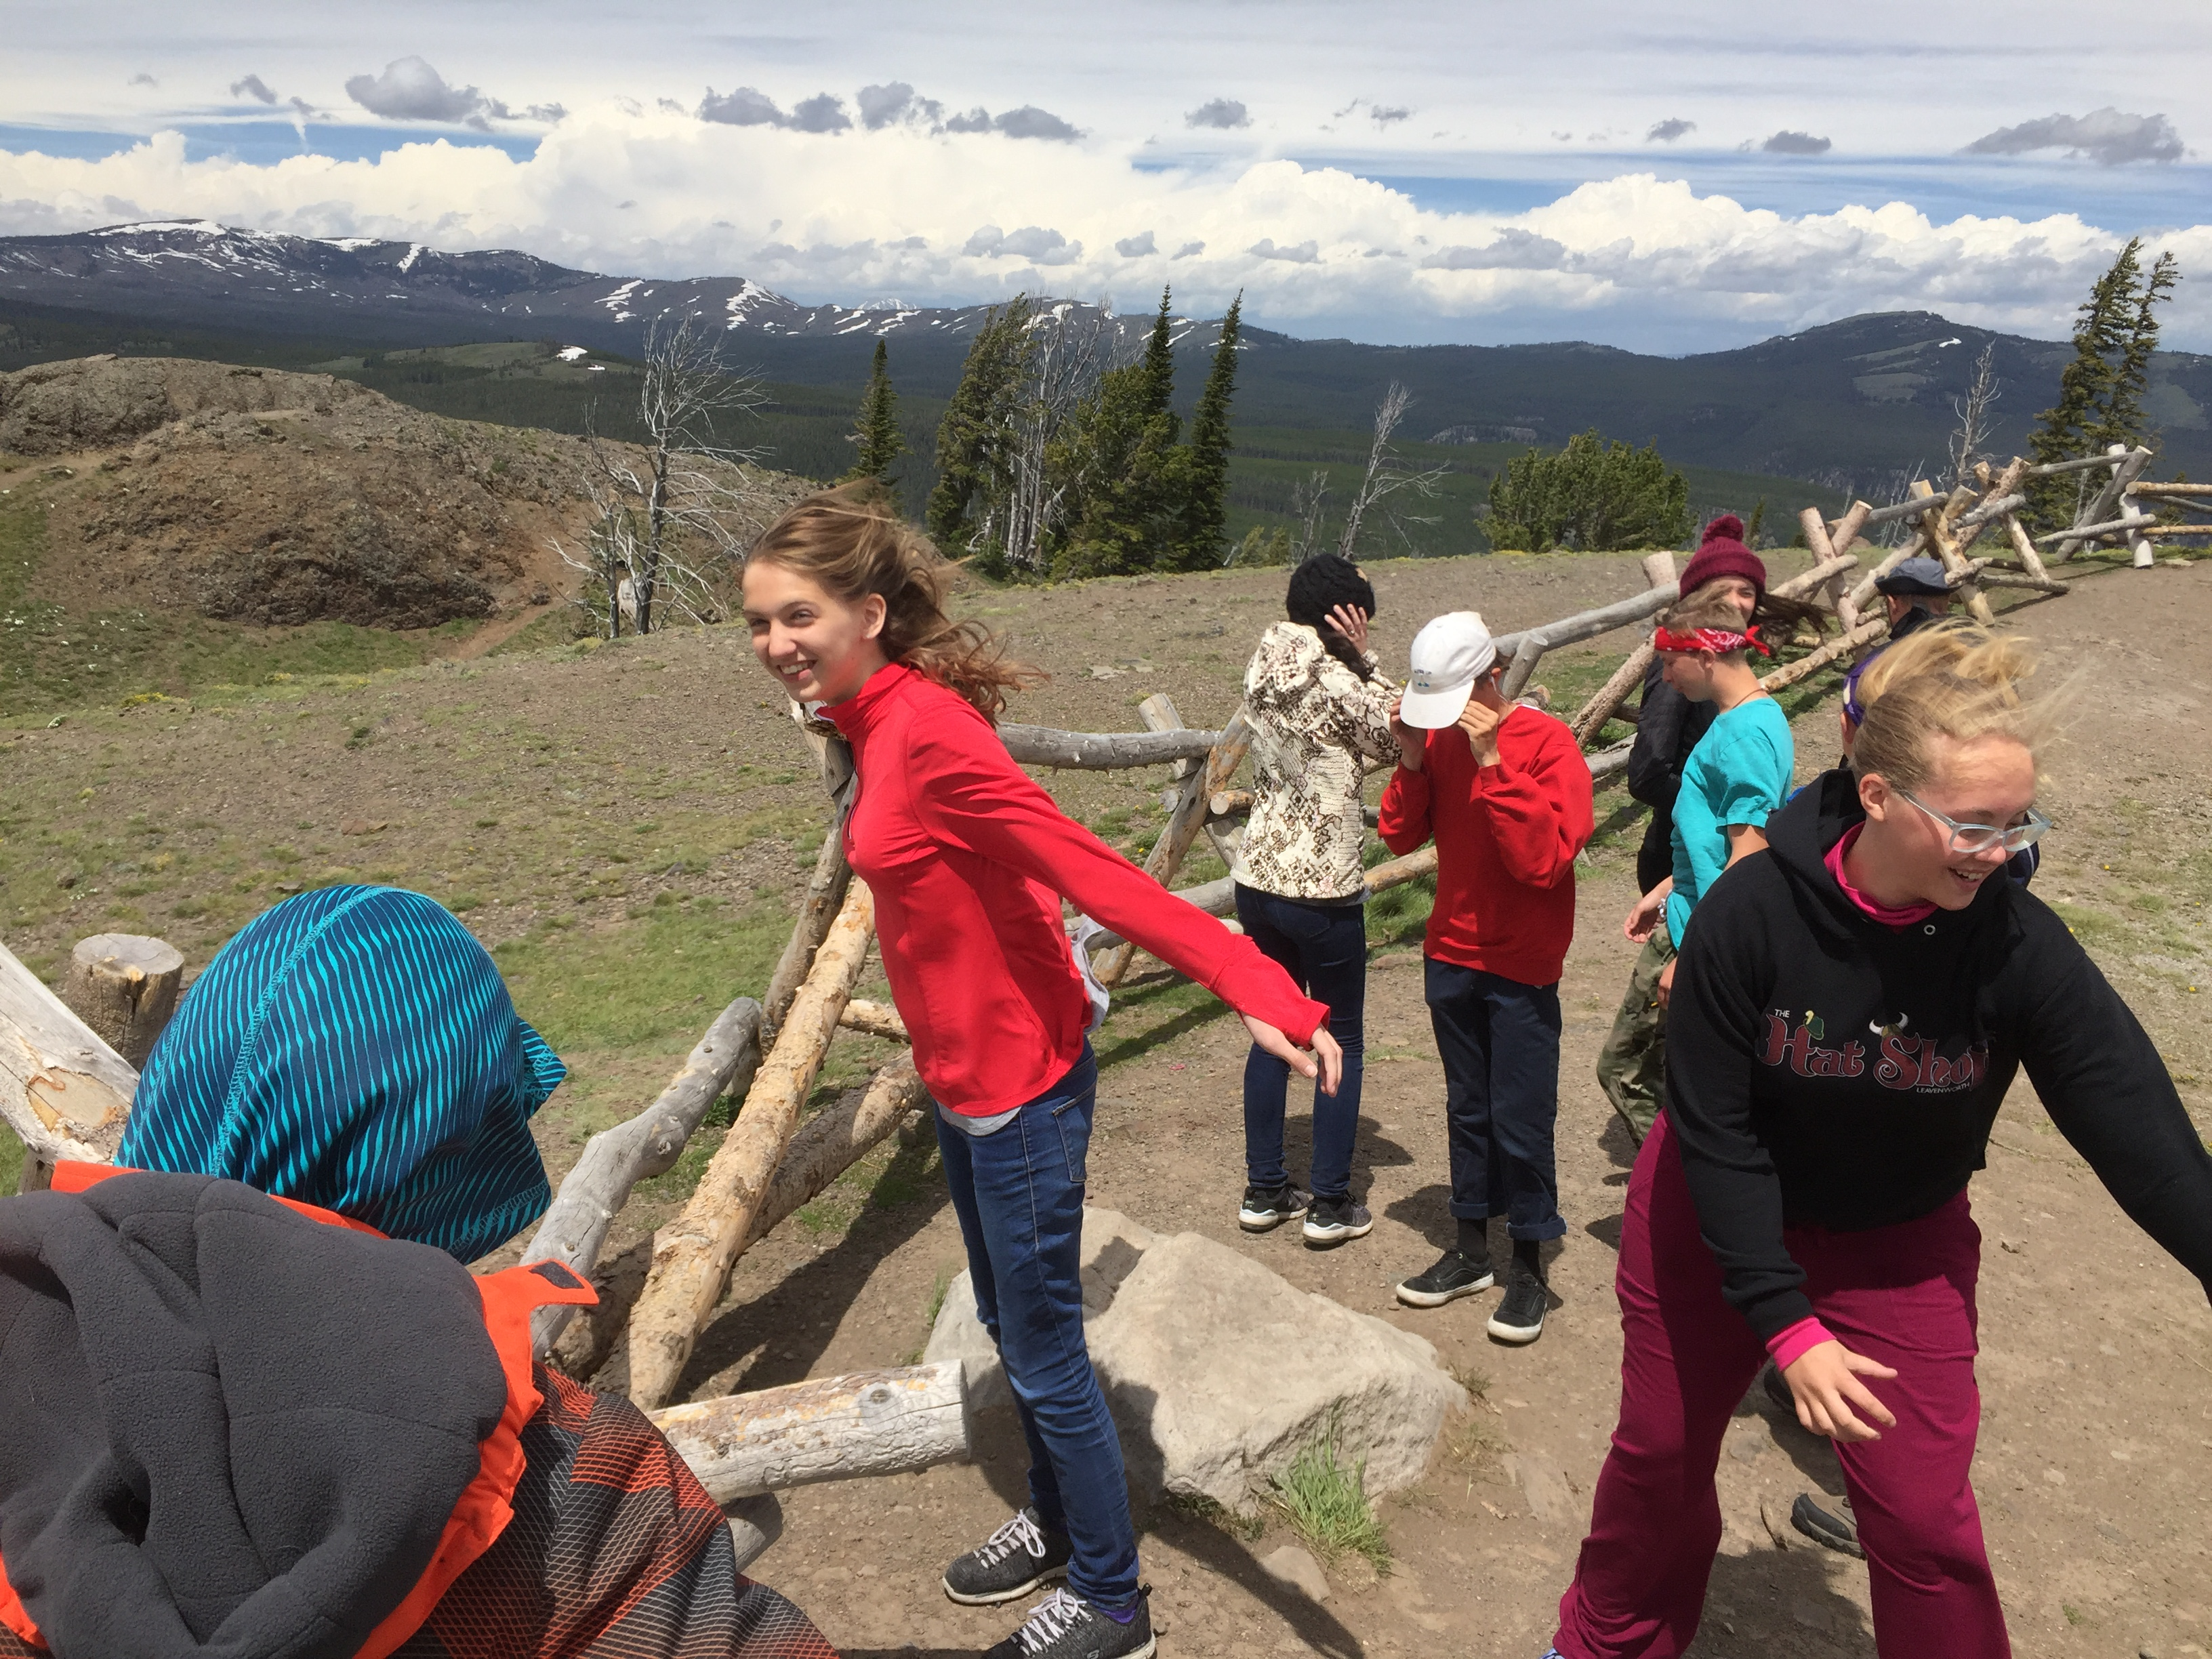 Students on boardwalk at Yellowstone National Park